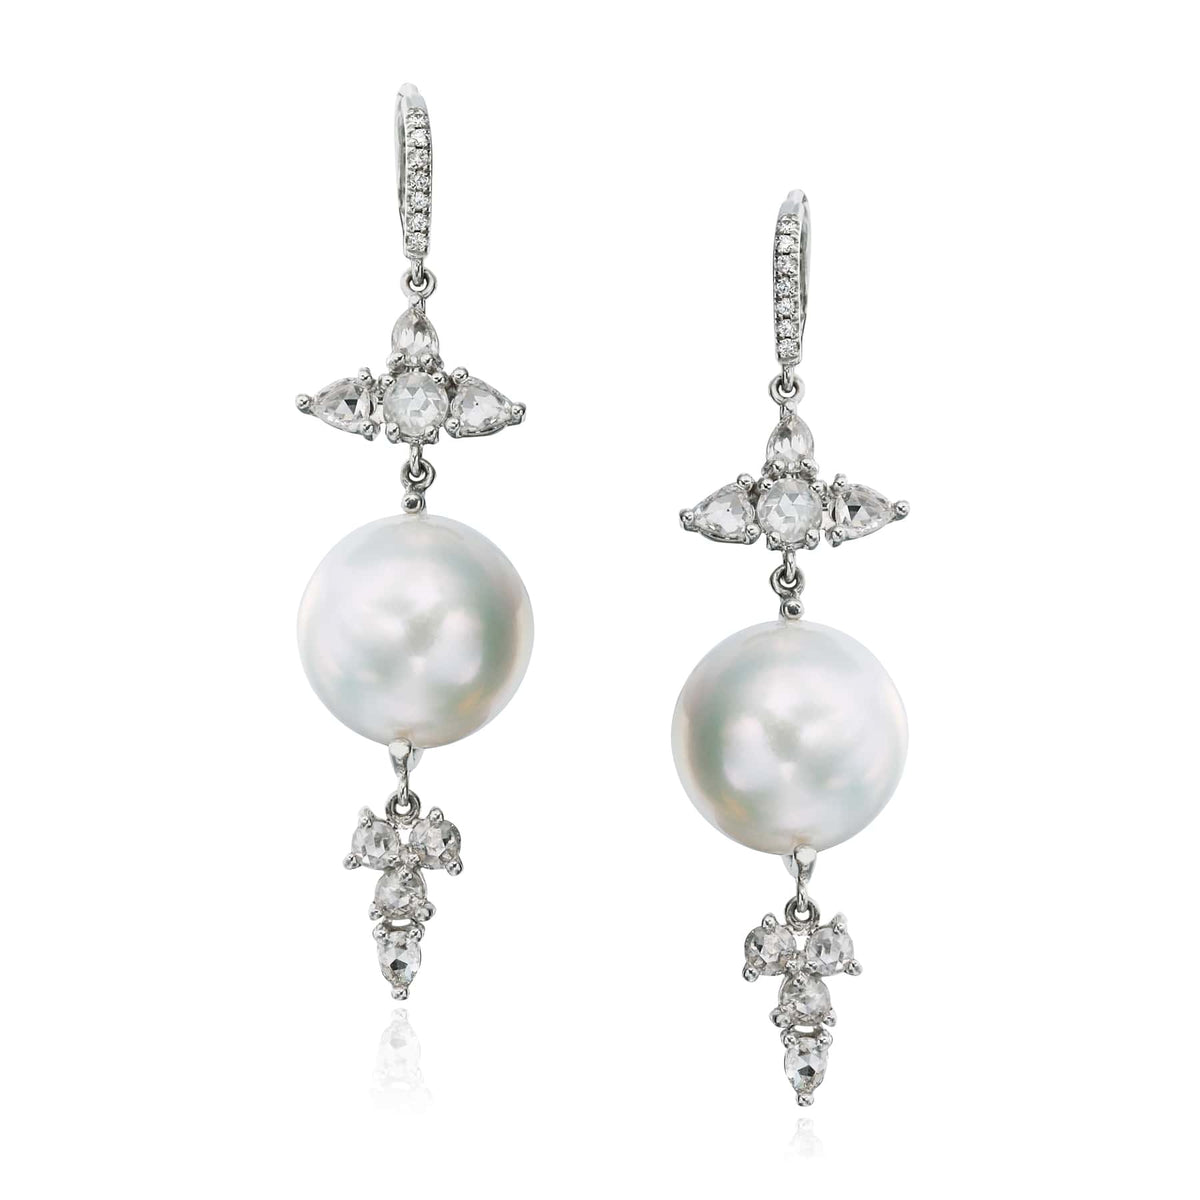 Baroque Pearl and Diamond Earrings